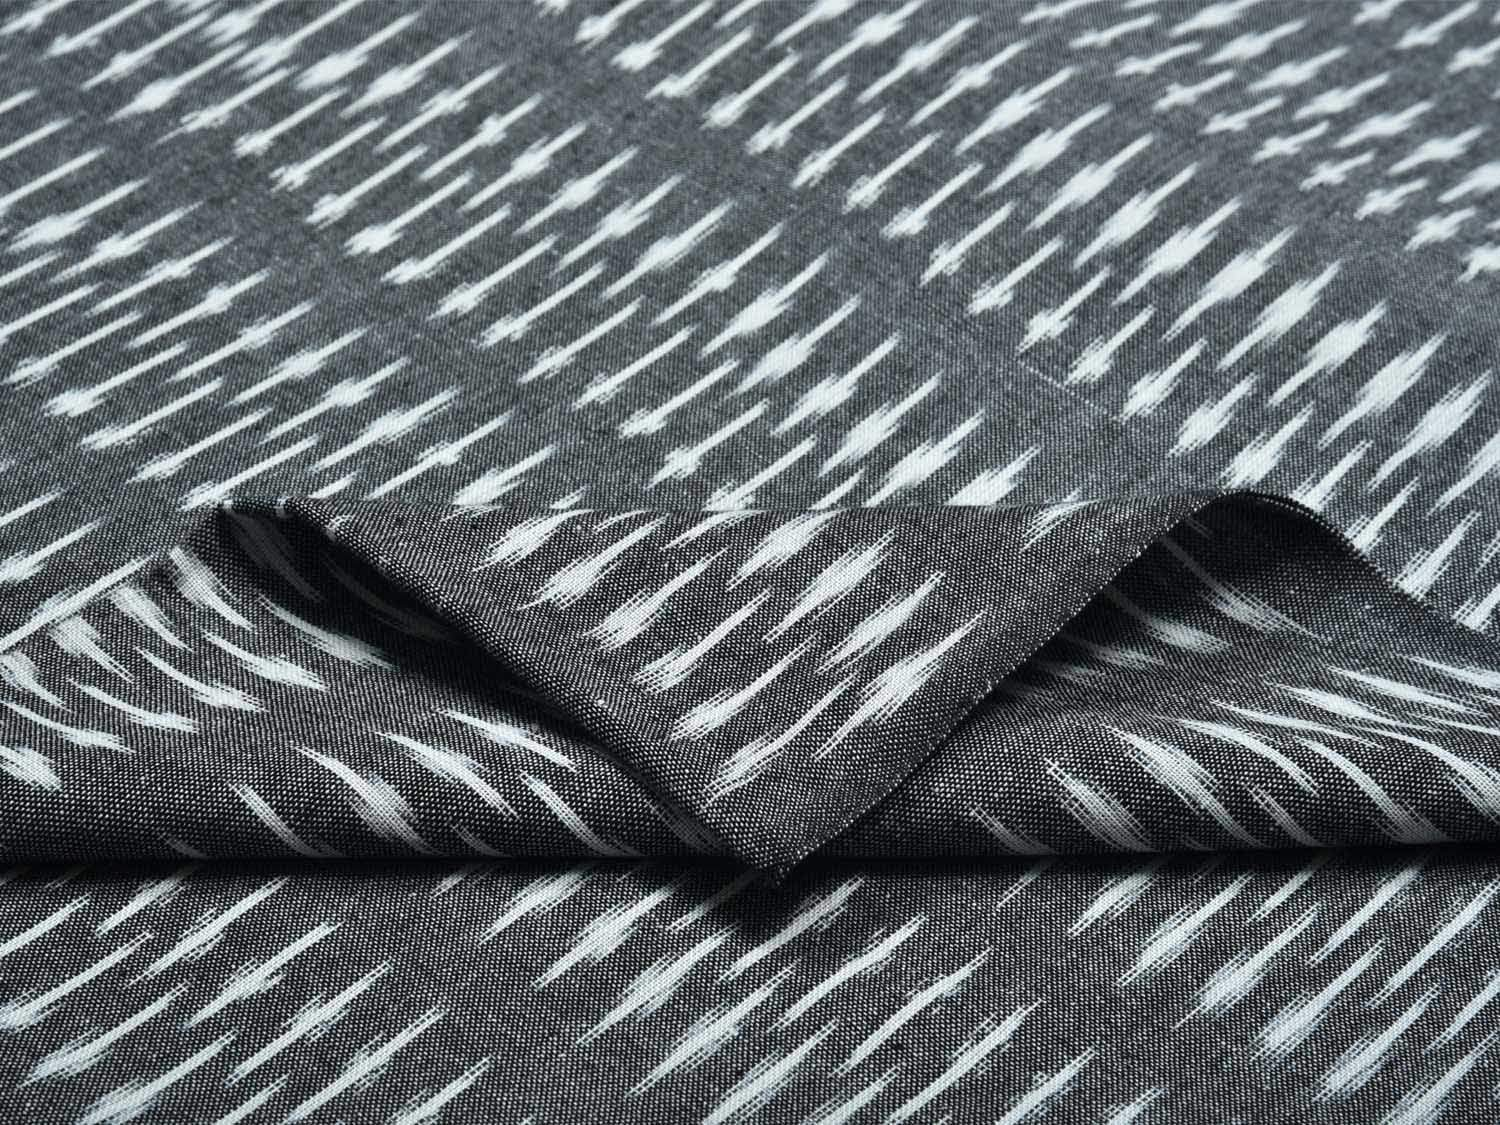 Grey Pochampally Ikat Cotton Handloom Fabric Material with Fence Design f0147